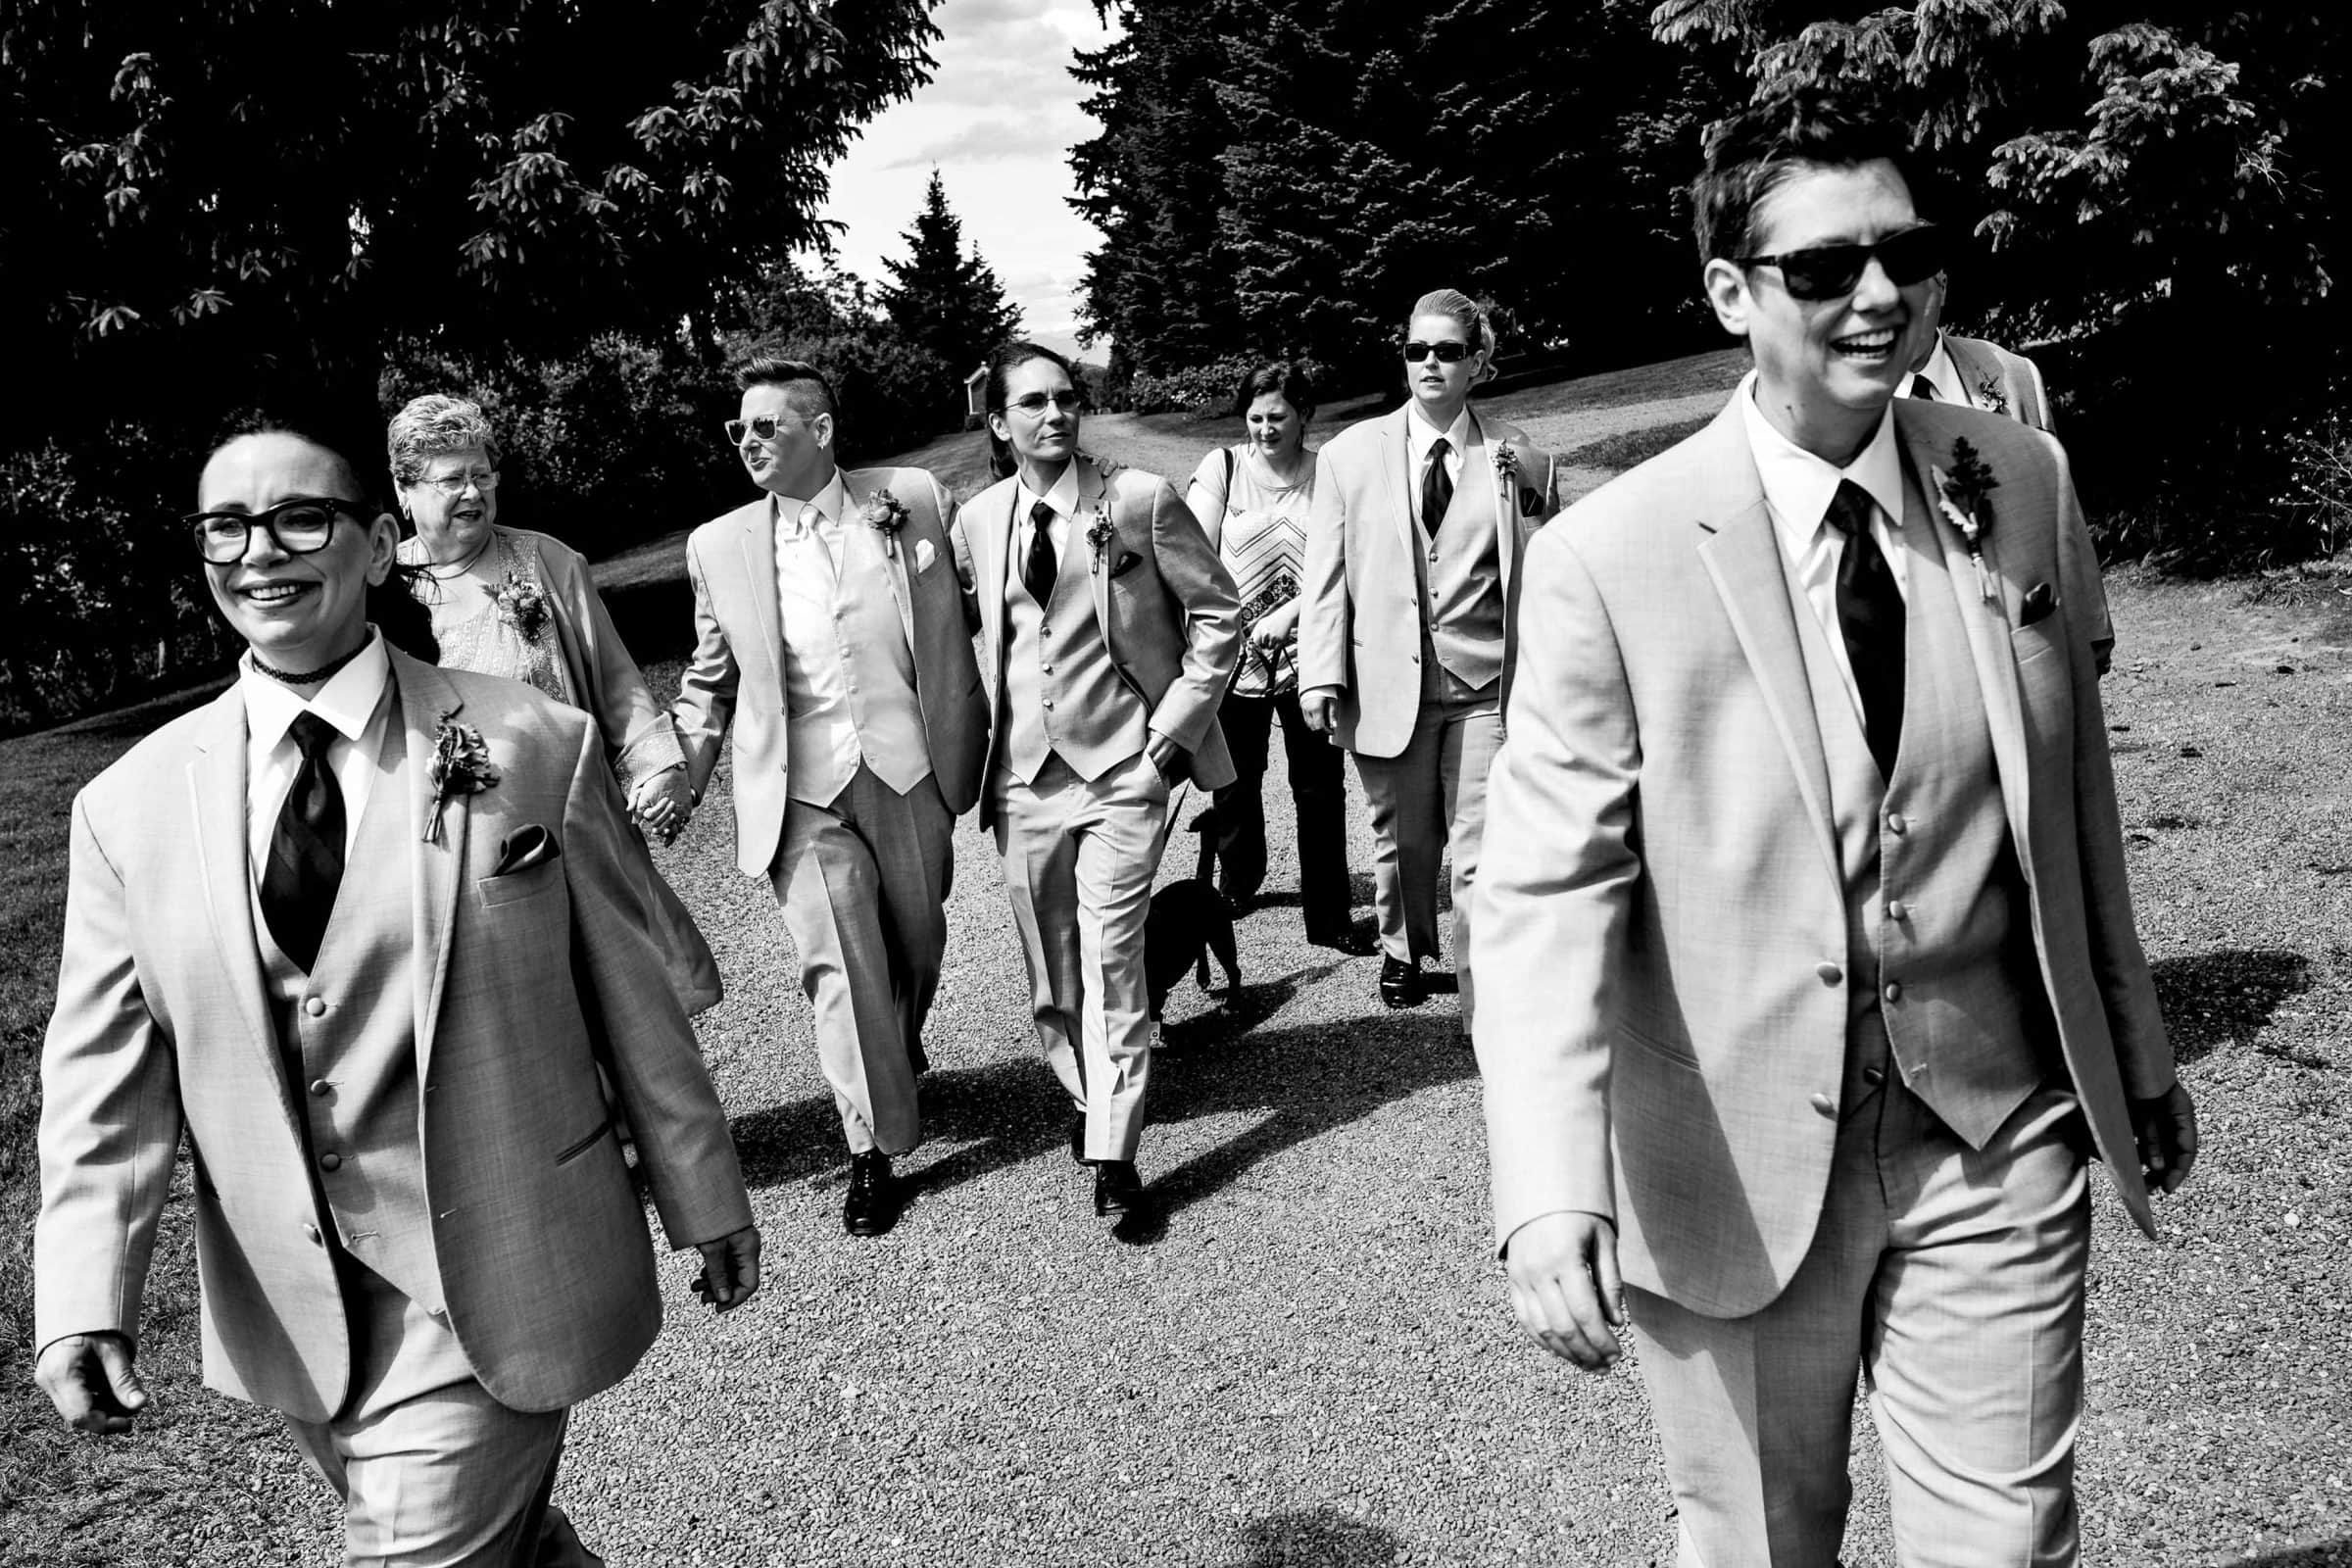 The bride groomsmen walking down to the reception at a Mt Hood organic farms wedding